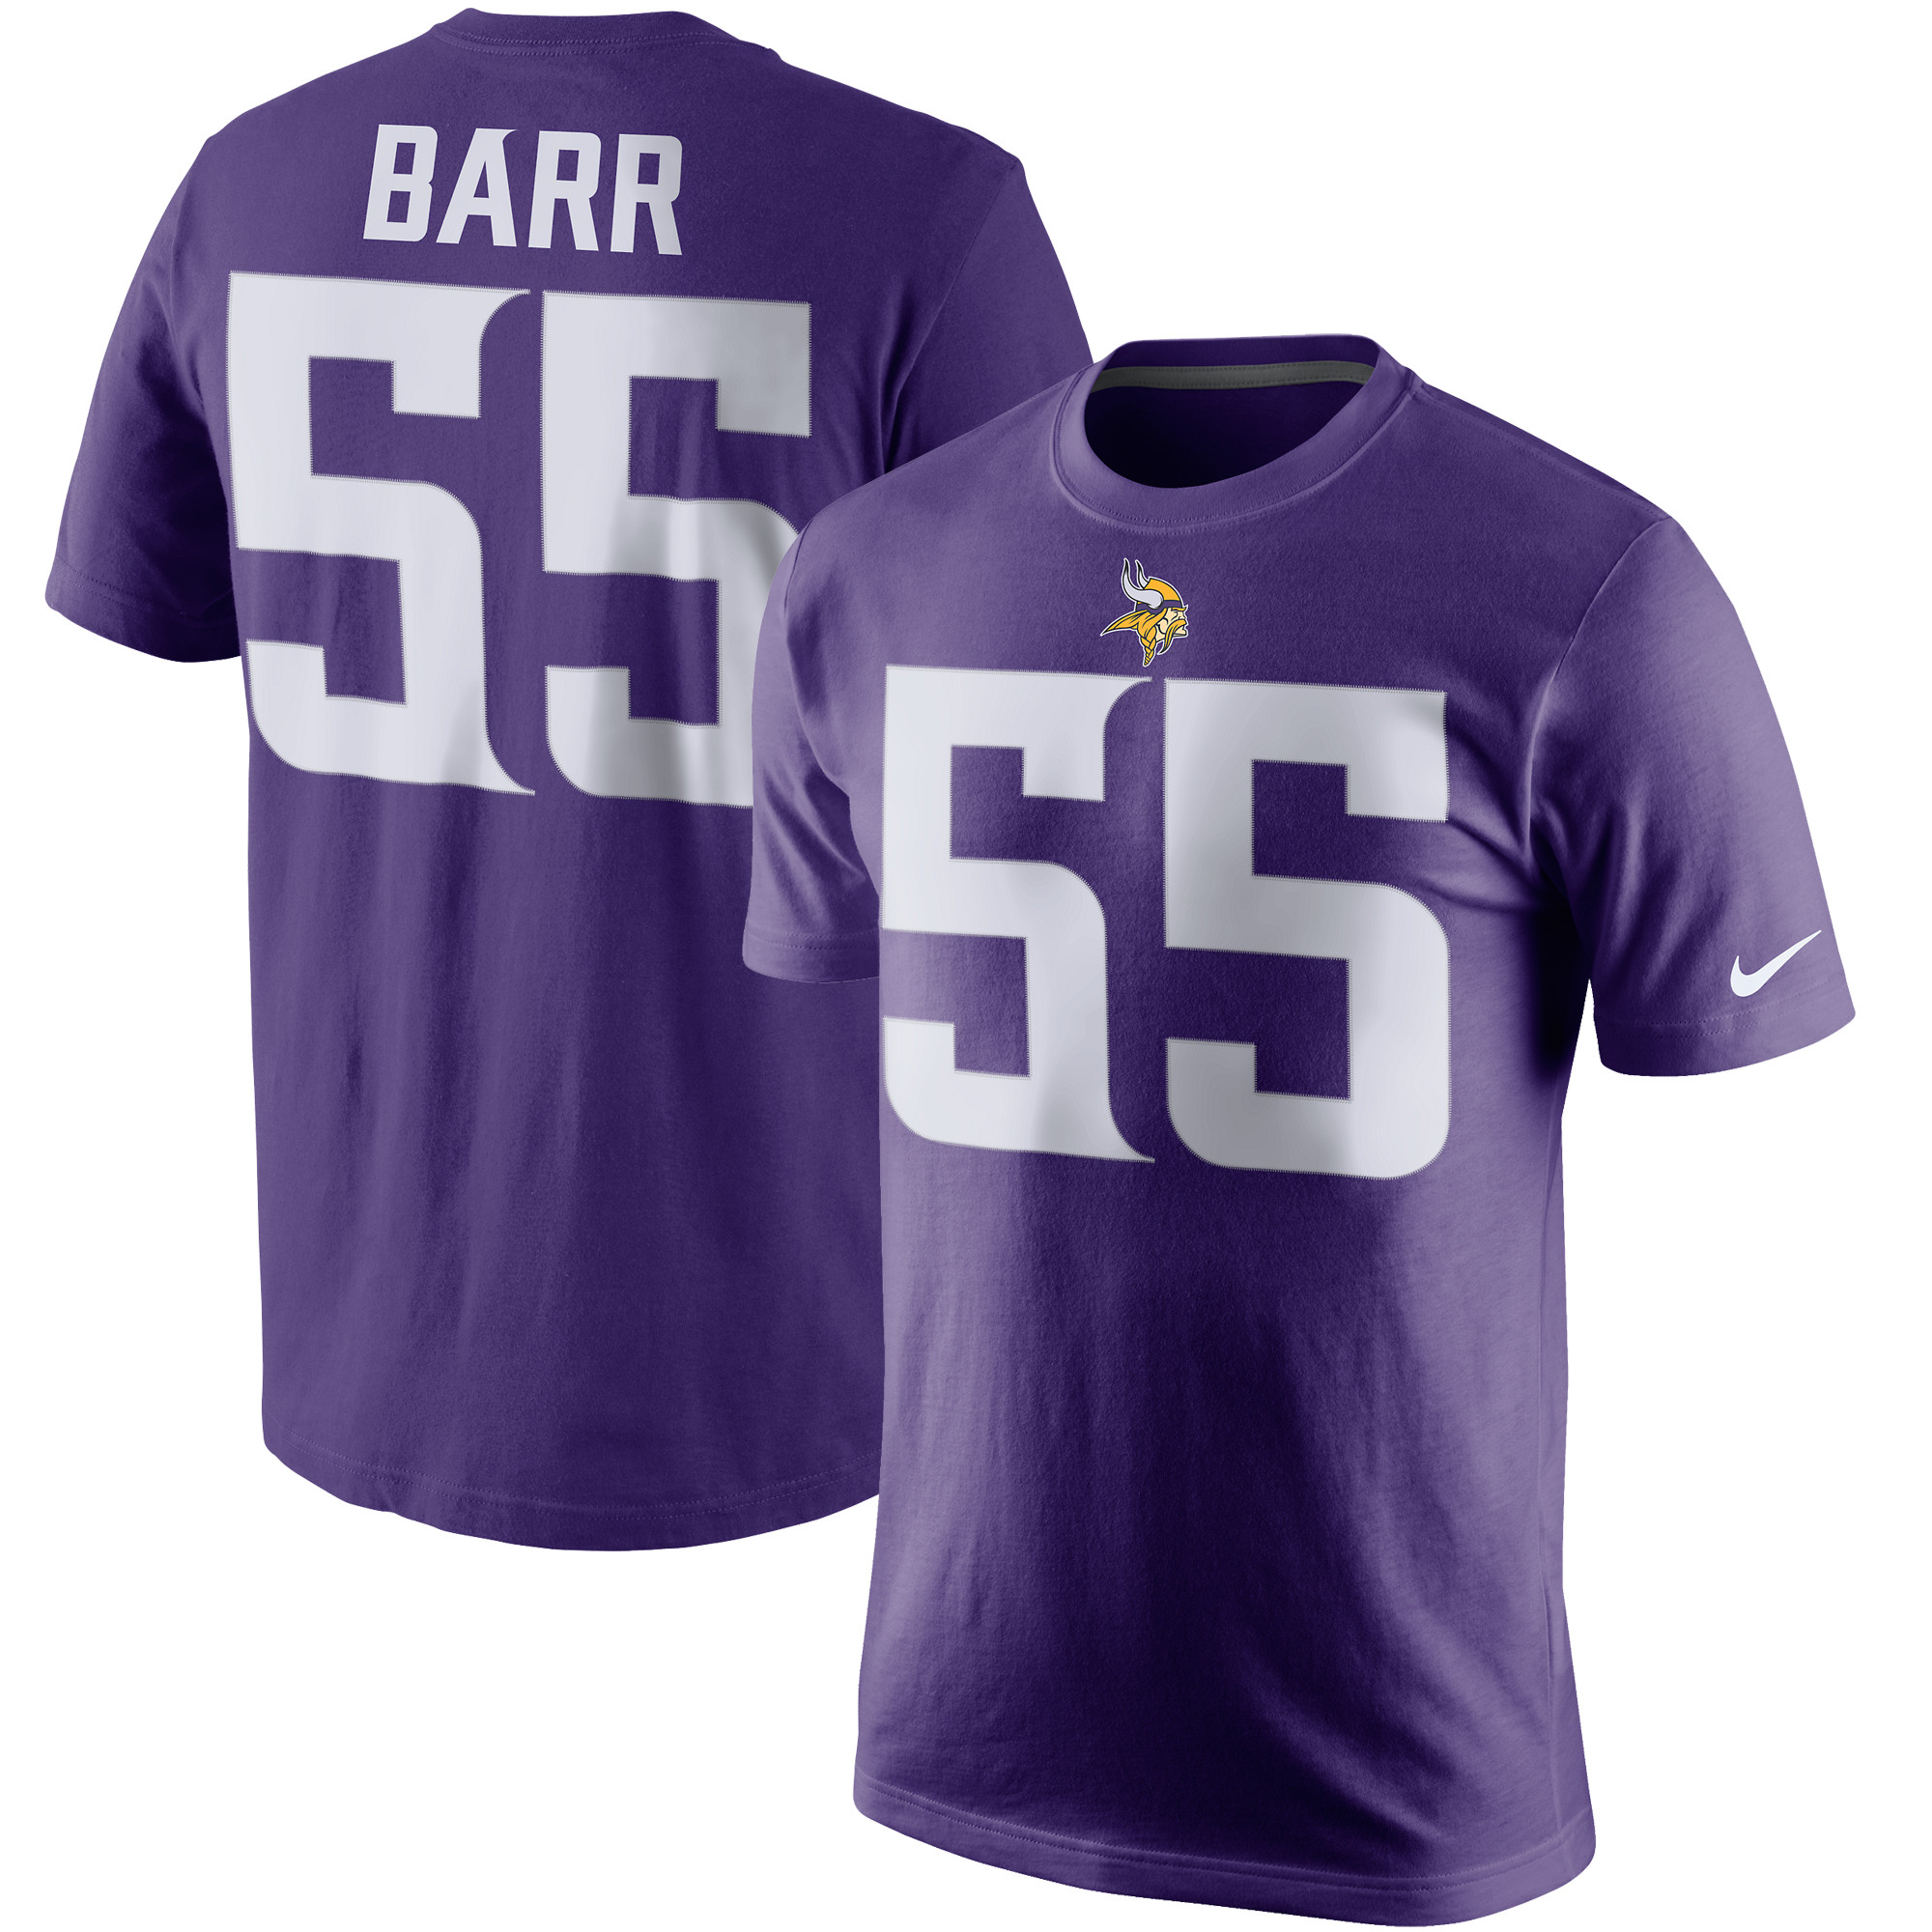 Anthony Barr Minnesota Vikings Nike Player Pride Name & Number T-Shirt - Purple